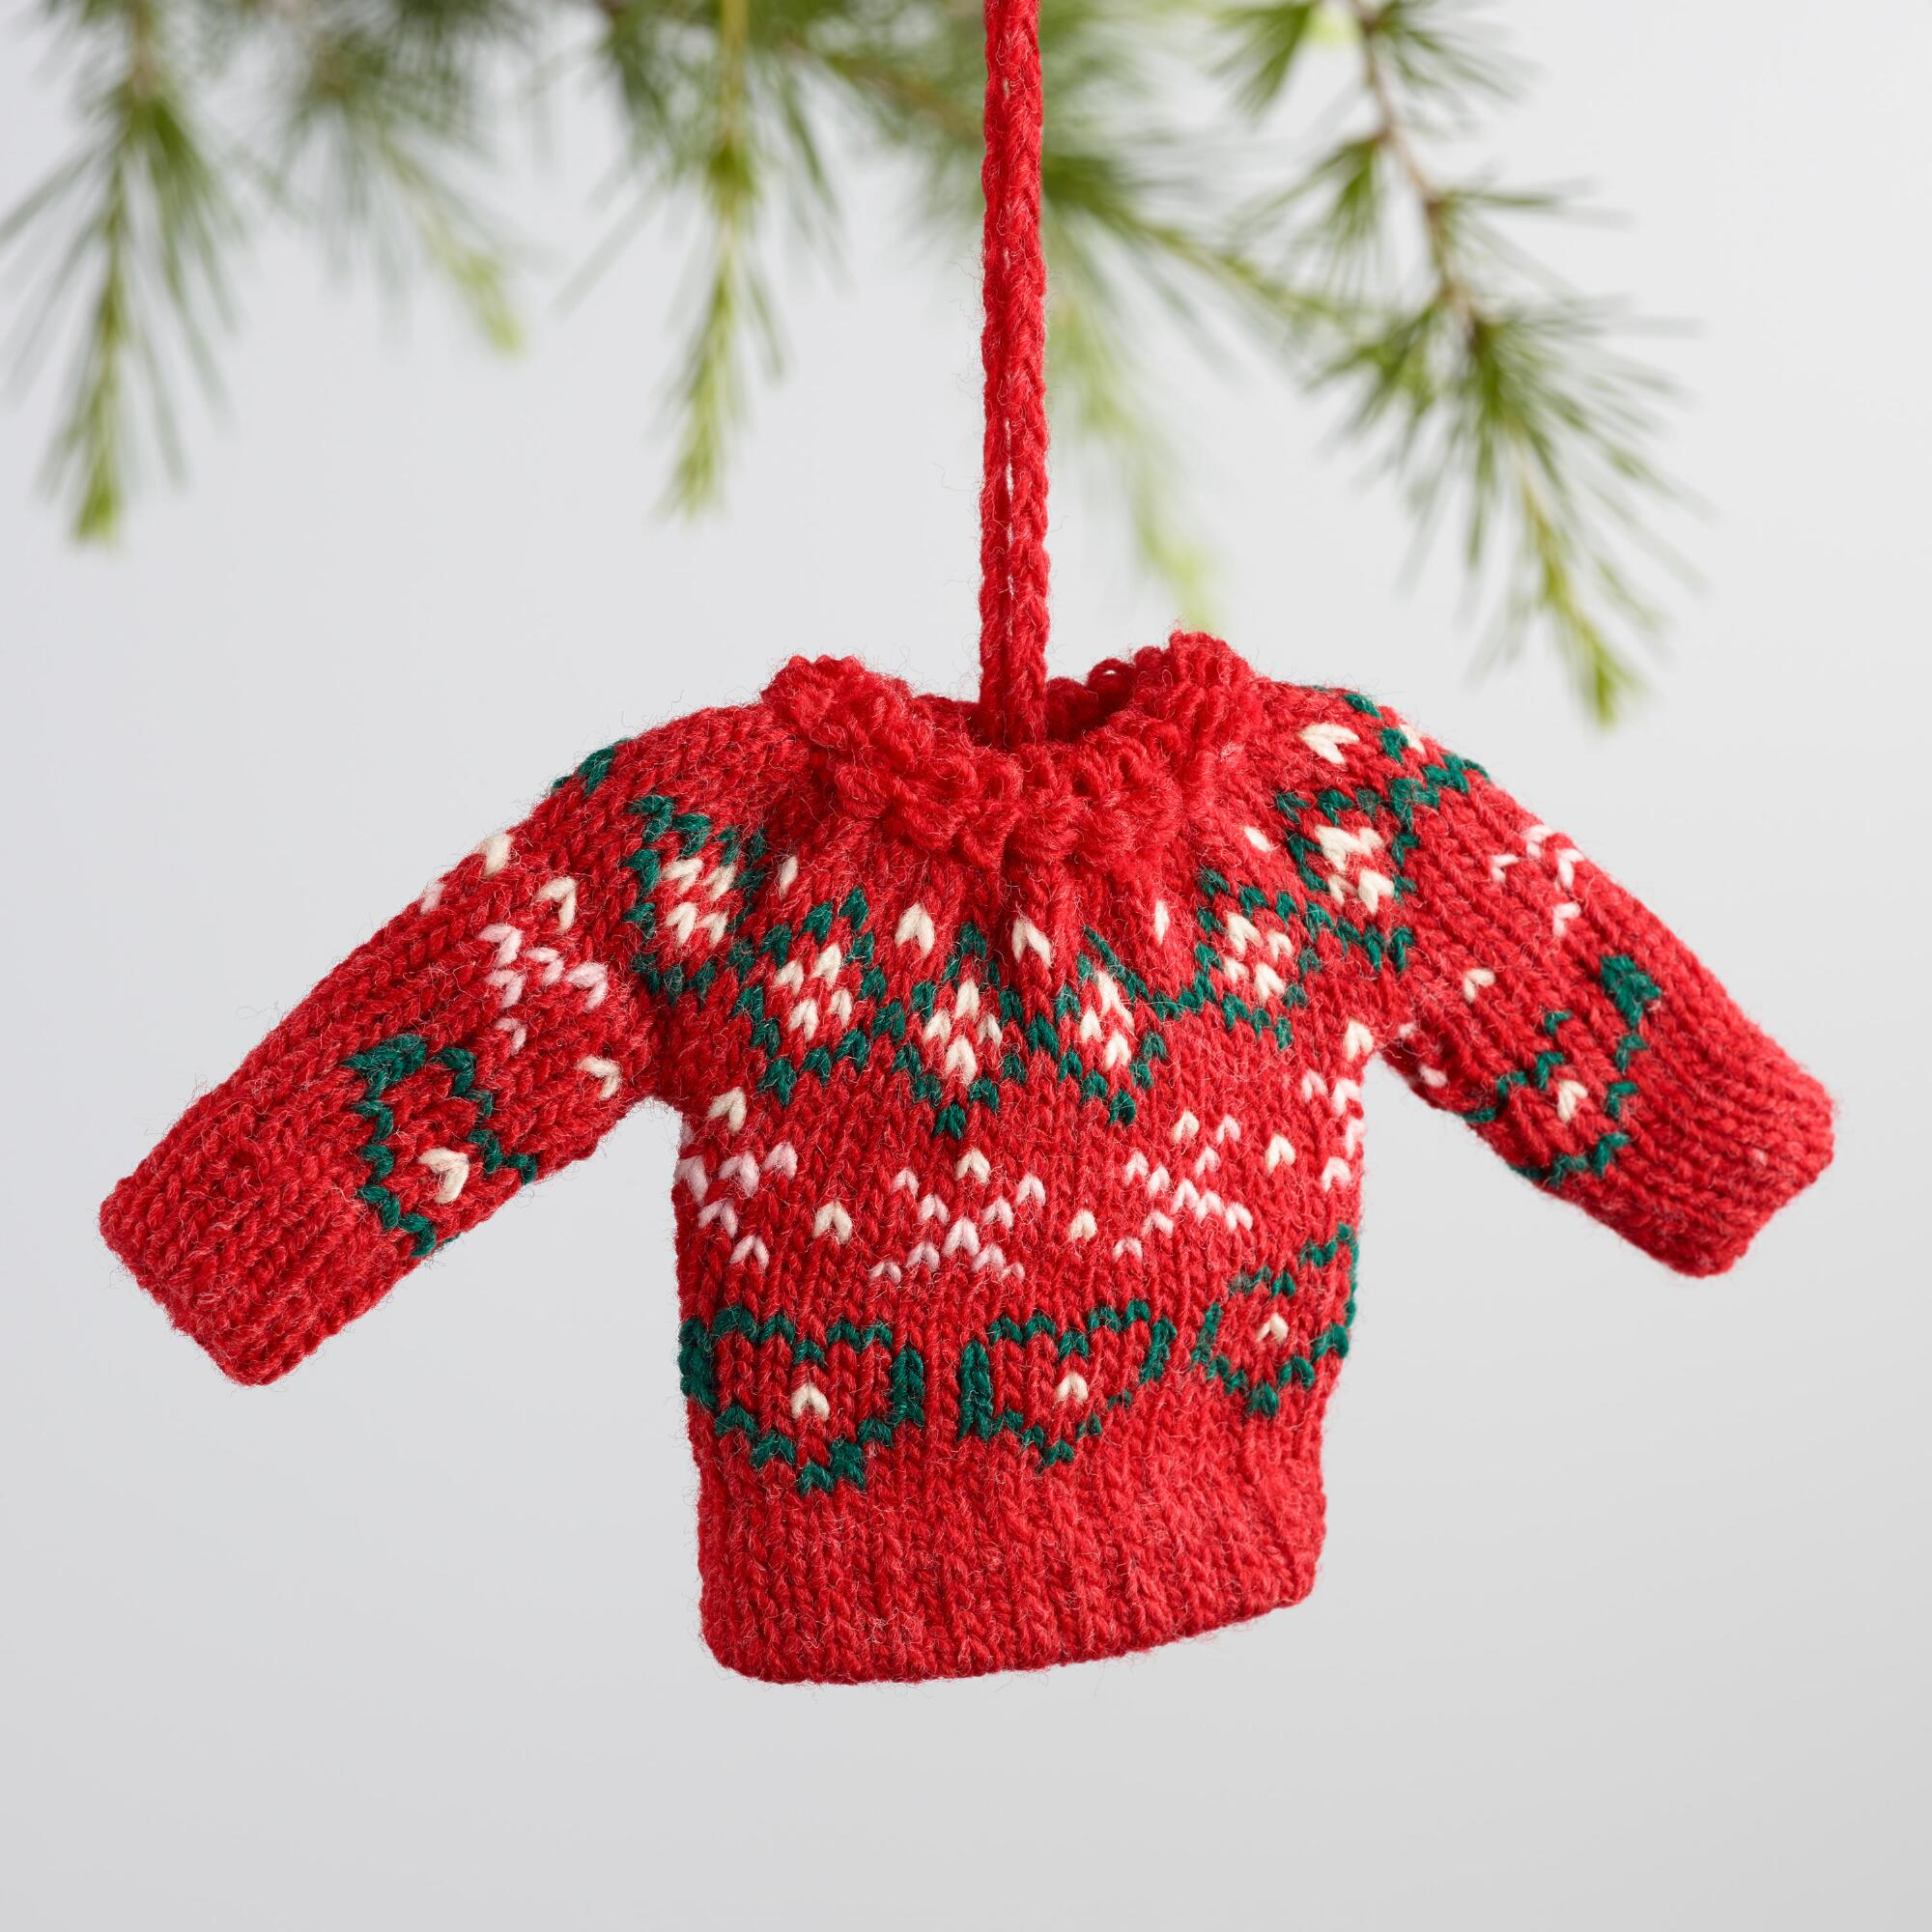 Knitted Christmas Decorations To Buy : Mini knit holiday sweater ornaments set of world market